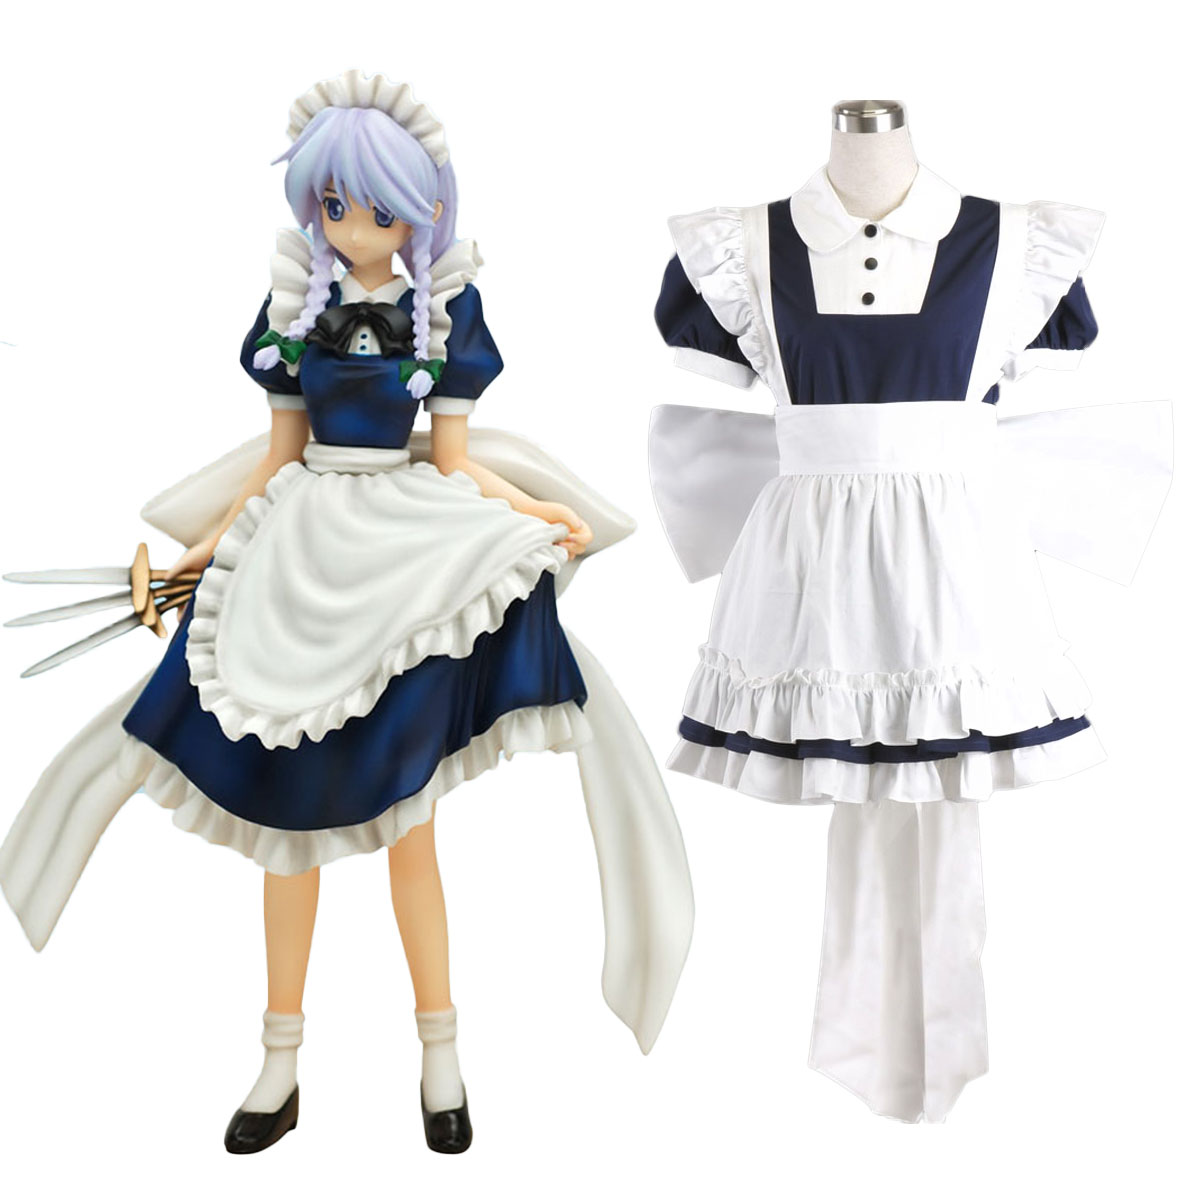 Touhou Project Izayoi Sakuya Cosplay Costumes Deluxe Edition